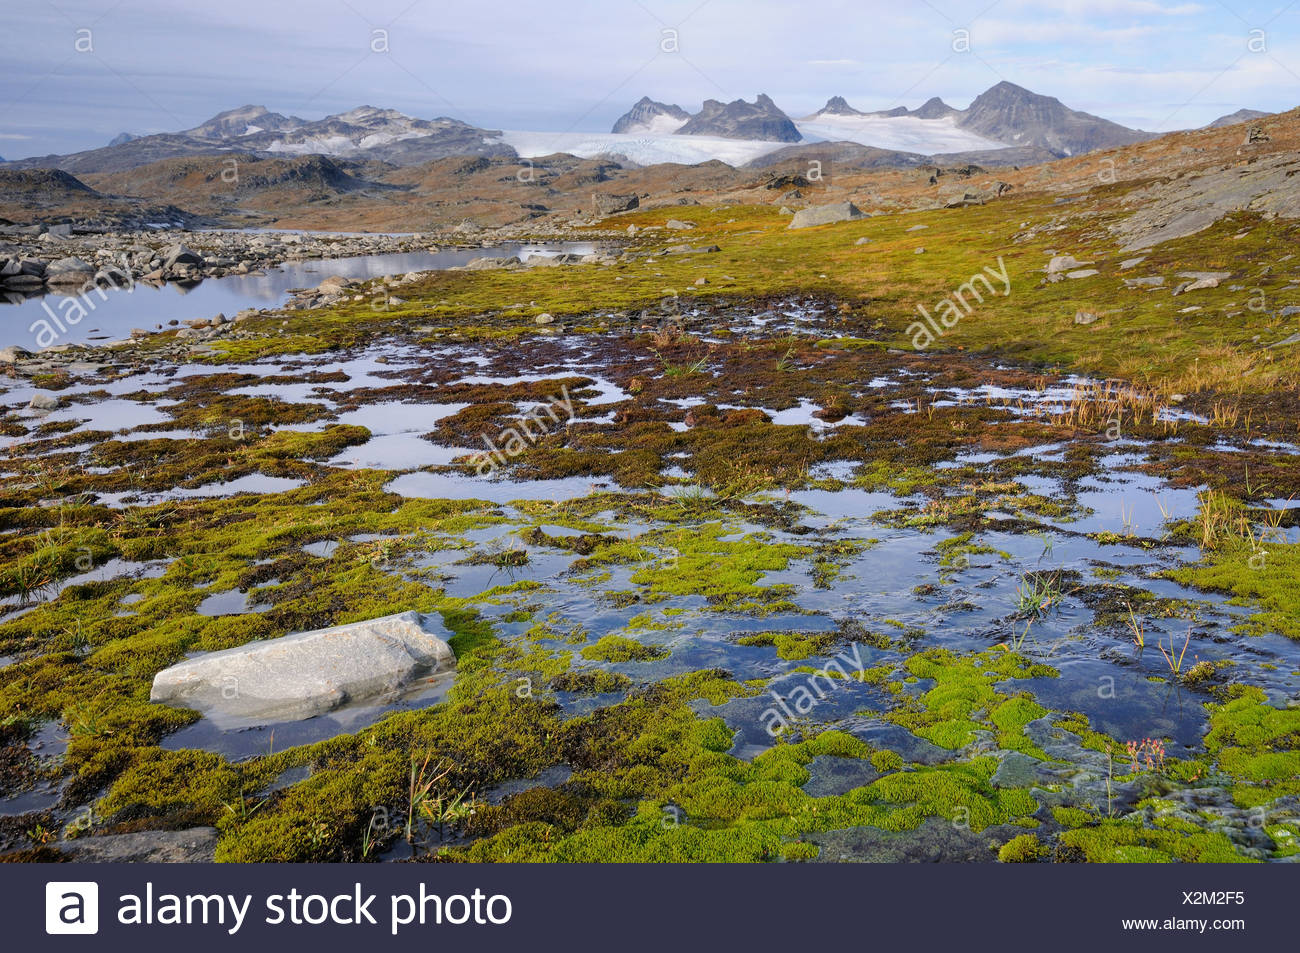 High mountain landscape in Jotunheimen National Park, Norway, Europe - Stock Image